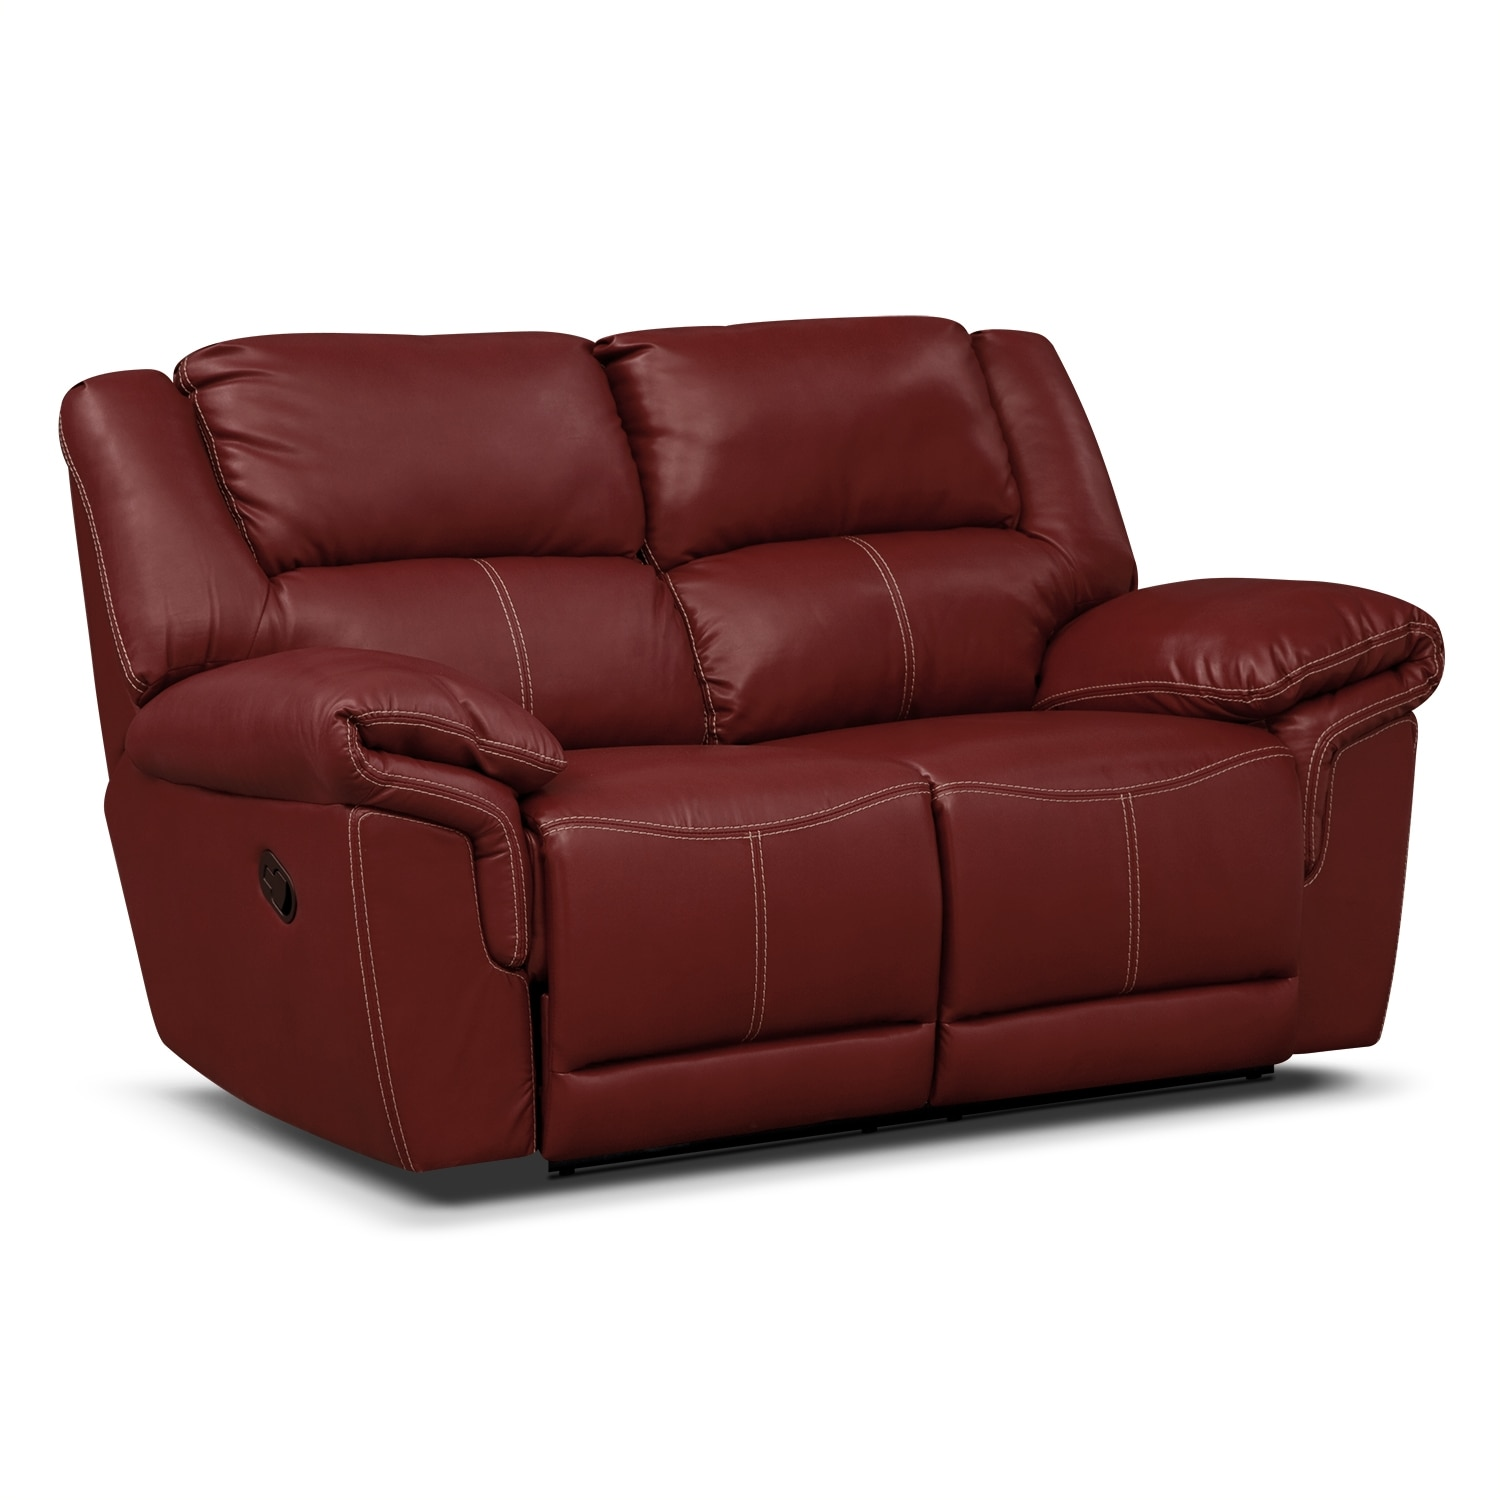 Jaguar ii leather dual reclining loveseat value city furniture Loveseats that recline